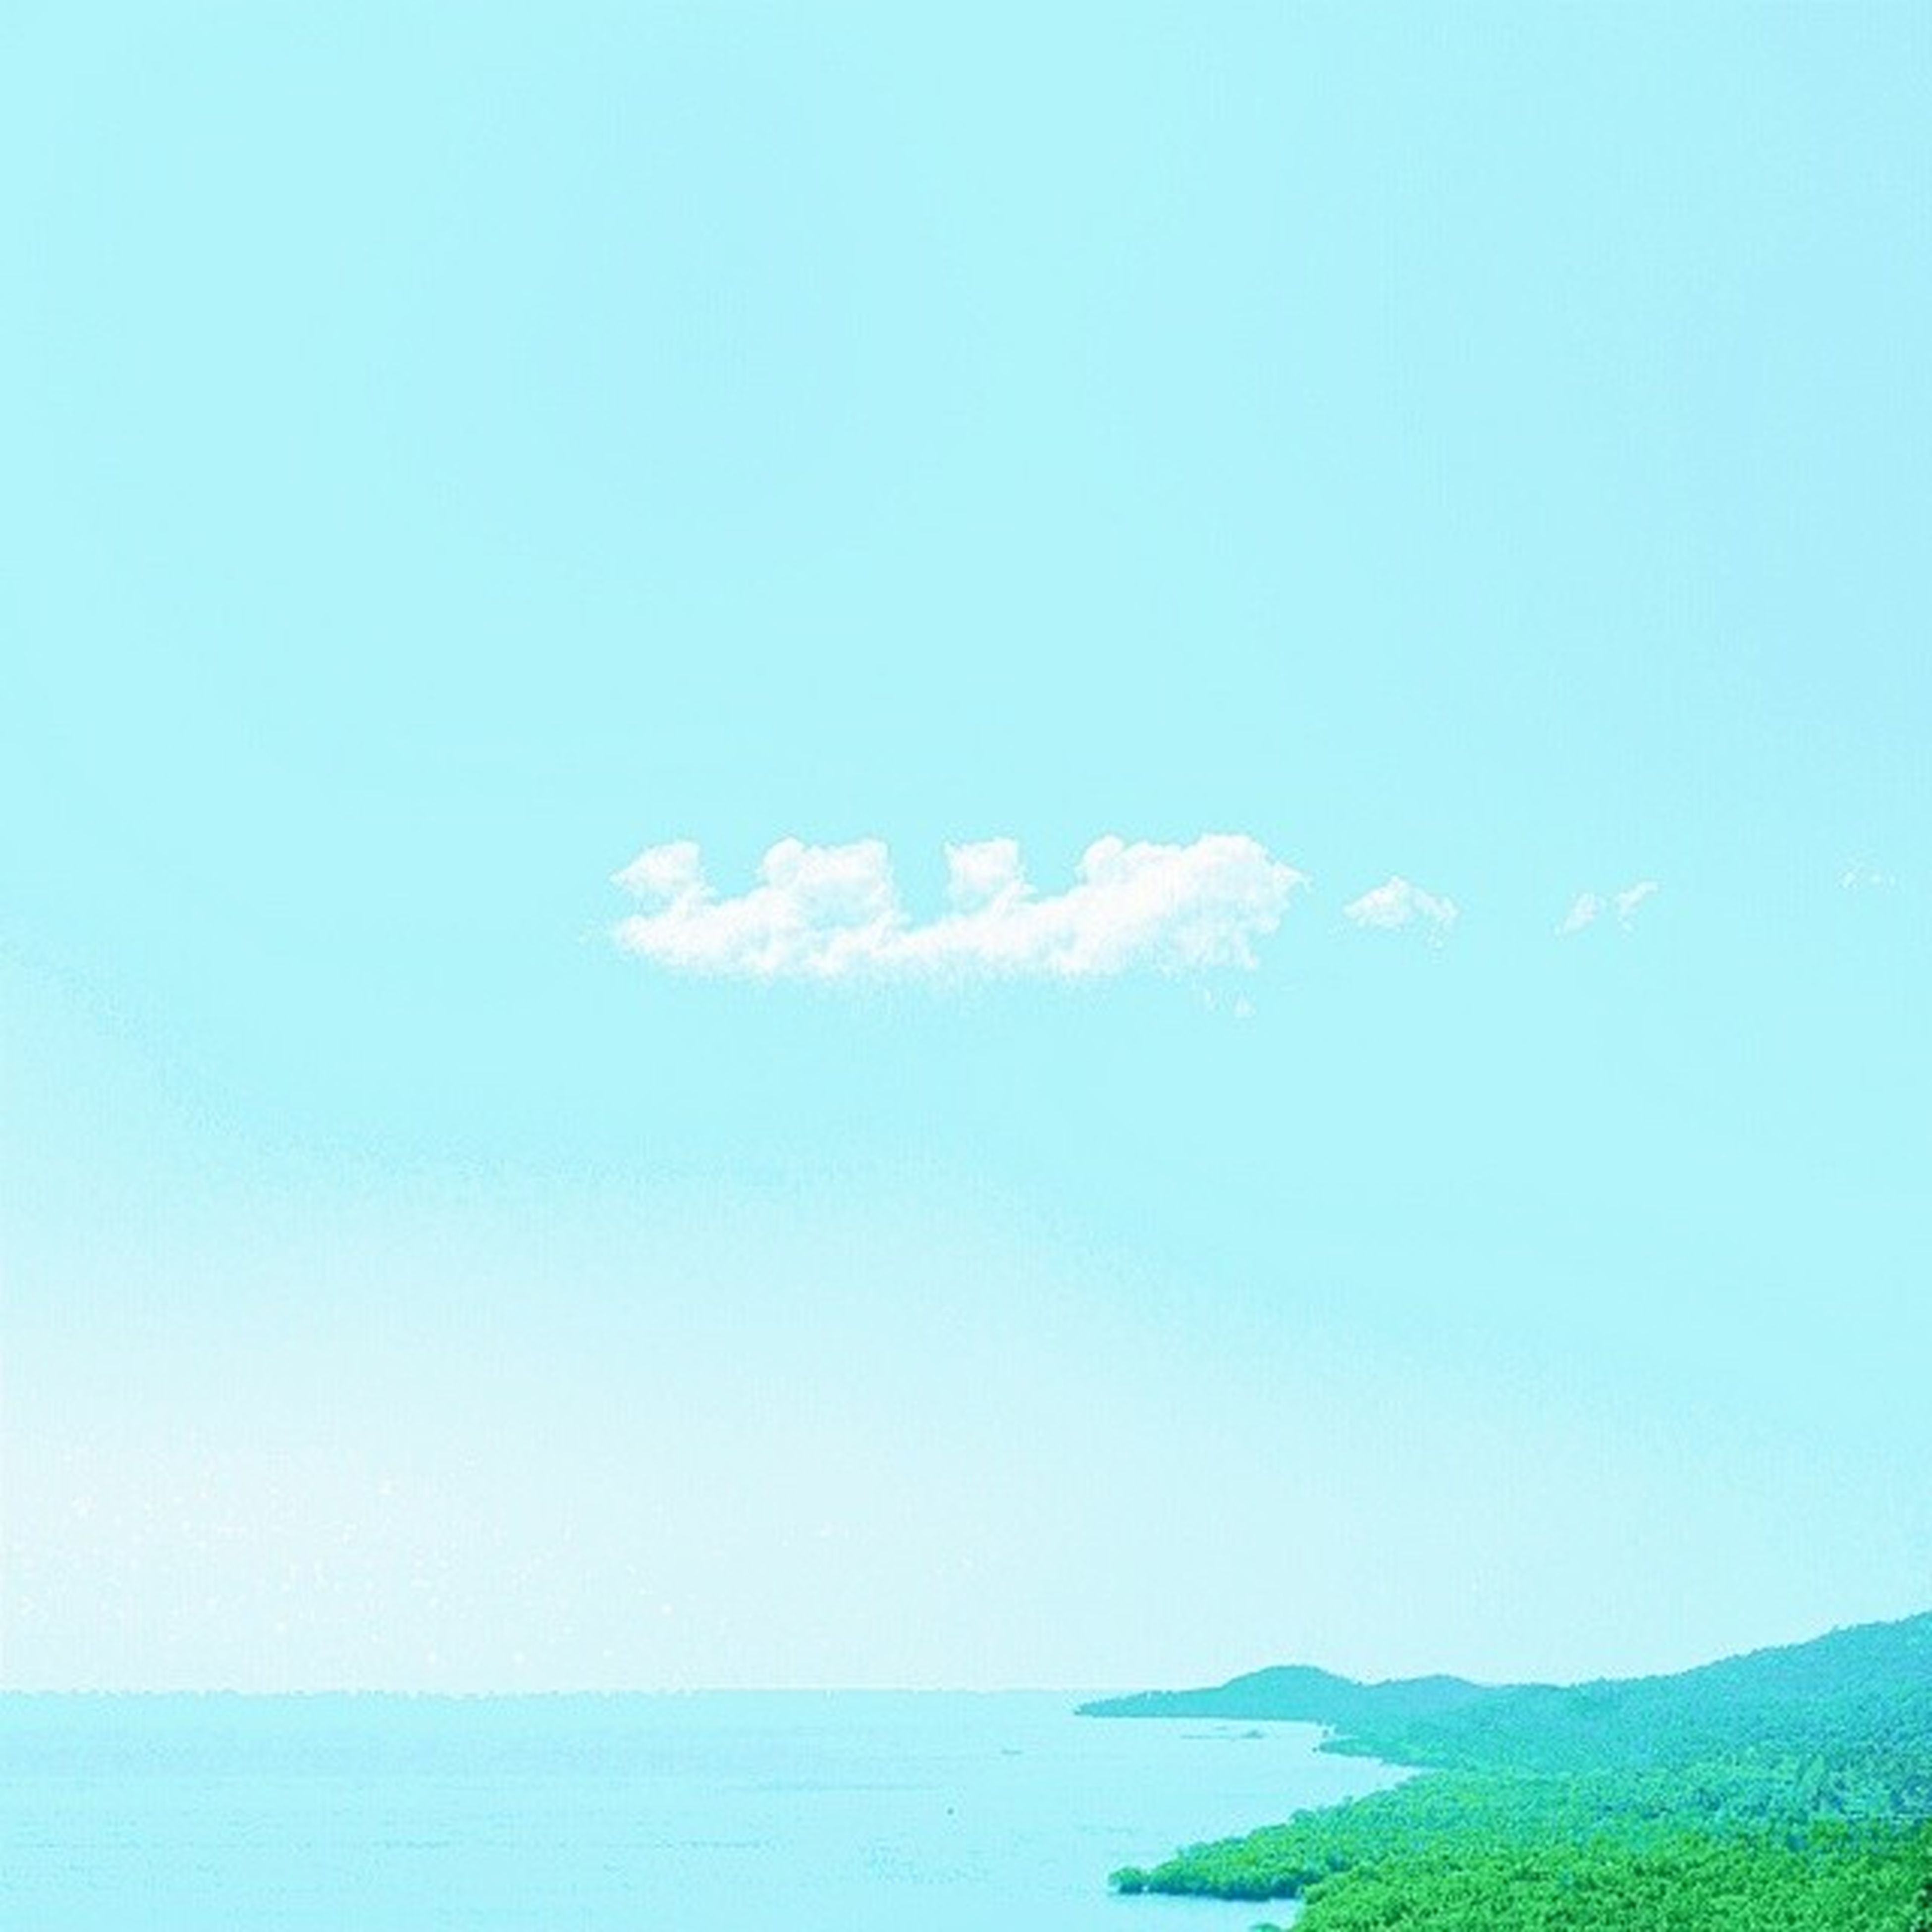 tranquil scene, blue, tranquility, copy space, sea, scenics, beauty in nature, clear sky, water, horizon over water, nature, idyllic, sky, day, remote, non-urban scene, waterfront, outdoors, no people, seascape